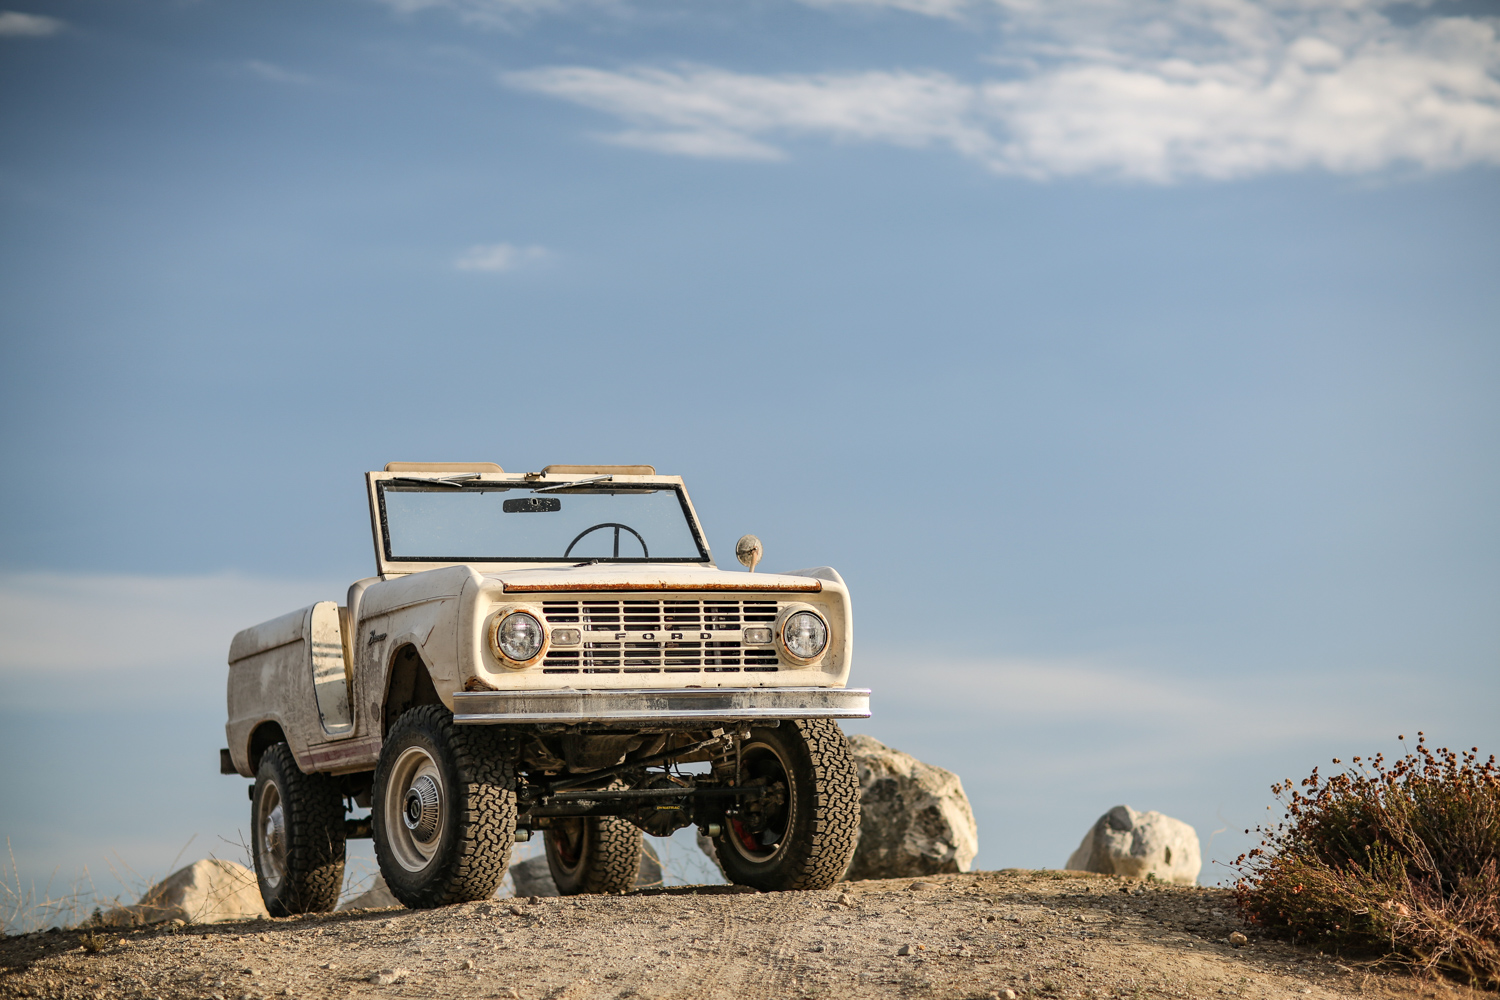 1966 Icon Derelict Bronco hill with rocks